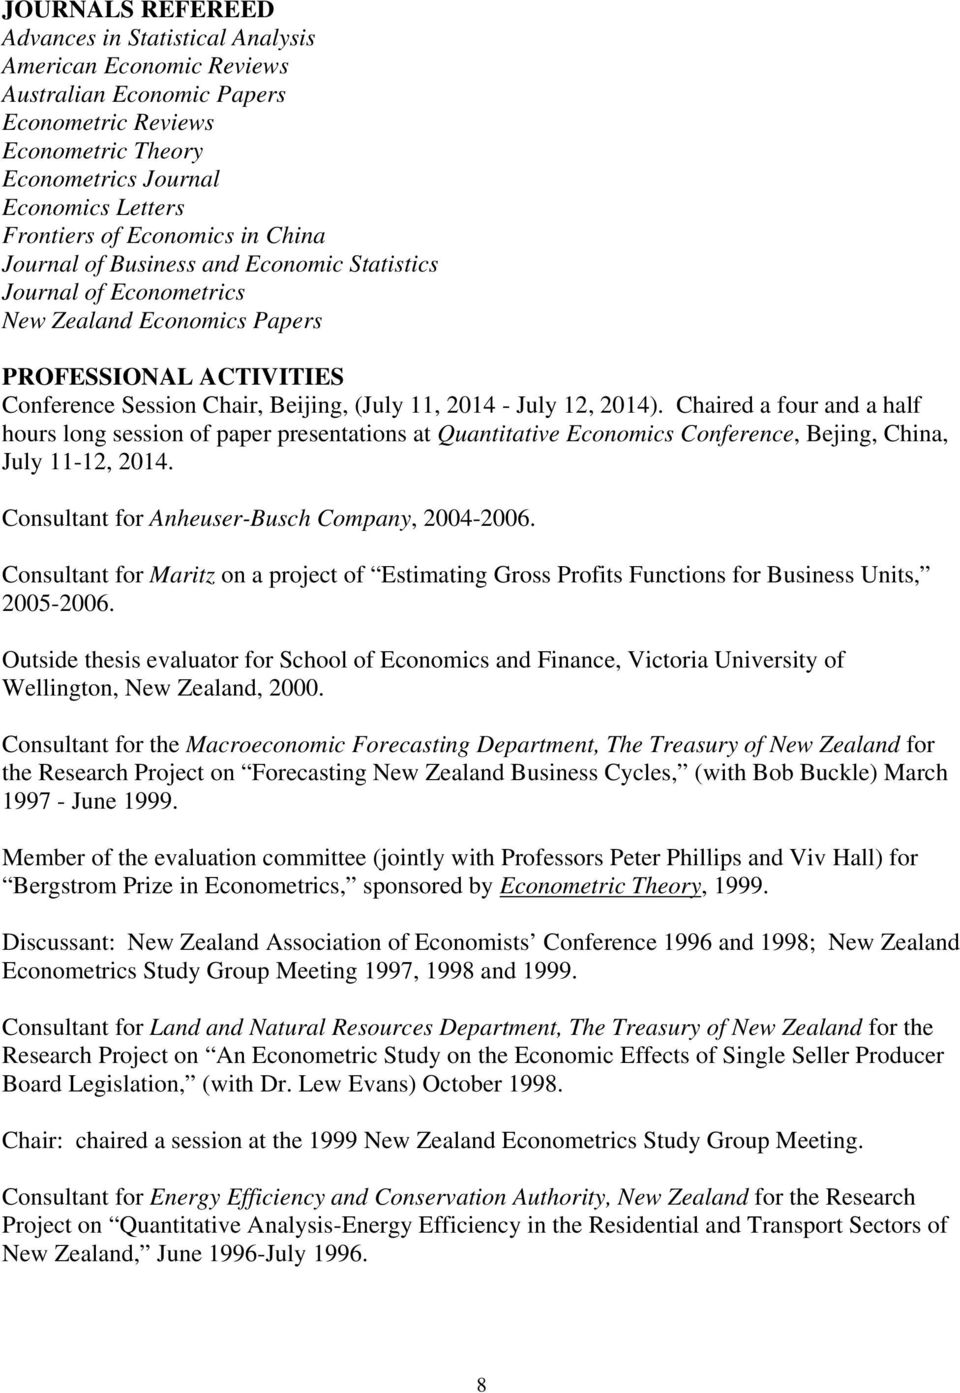 12, 2014). Chaired a four and a half hours long session of paper presentations at Quantitative Economics Conference, Bejing, China, July 11-12, 2014. Consultant for Anheuser-Busch Company, 2004-2006.